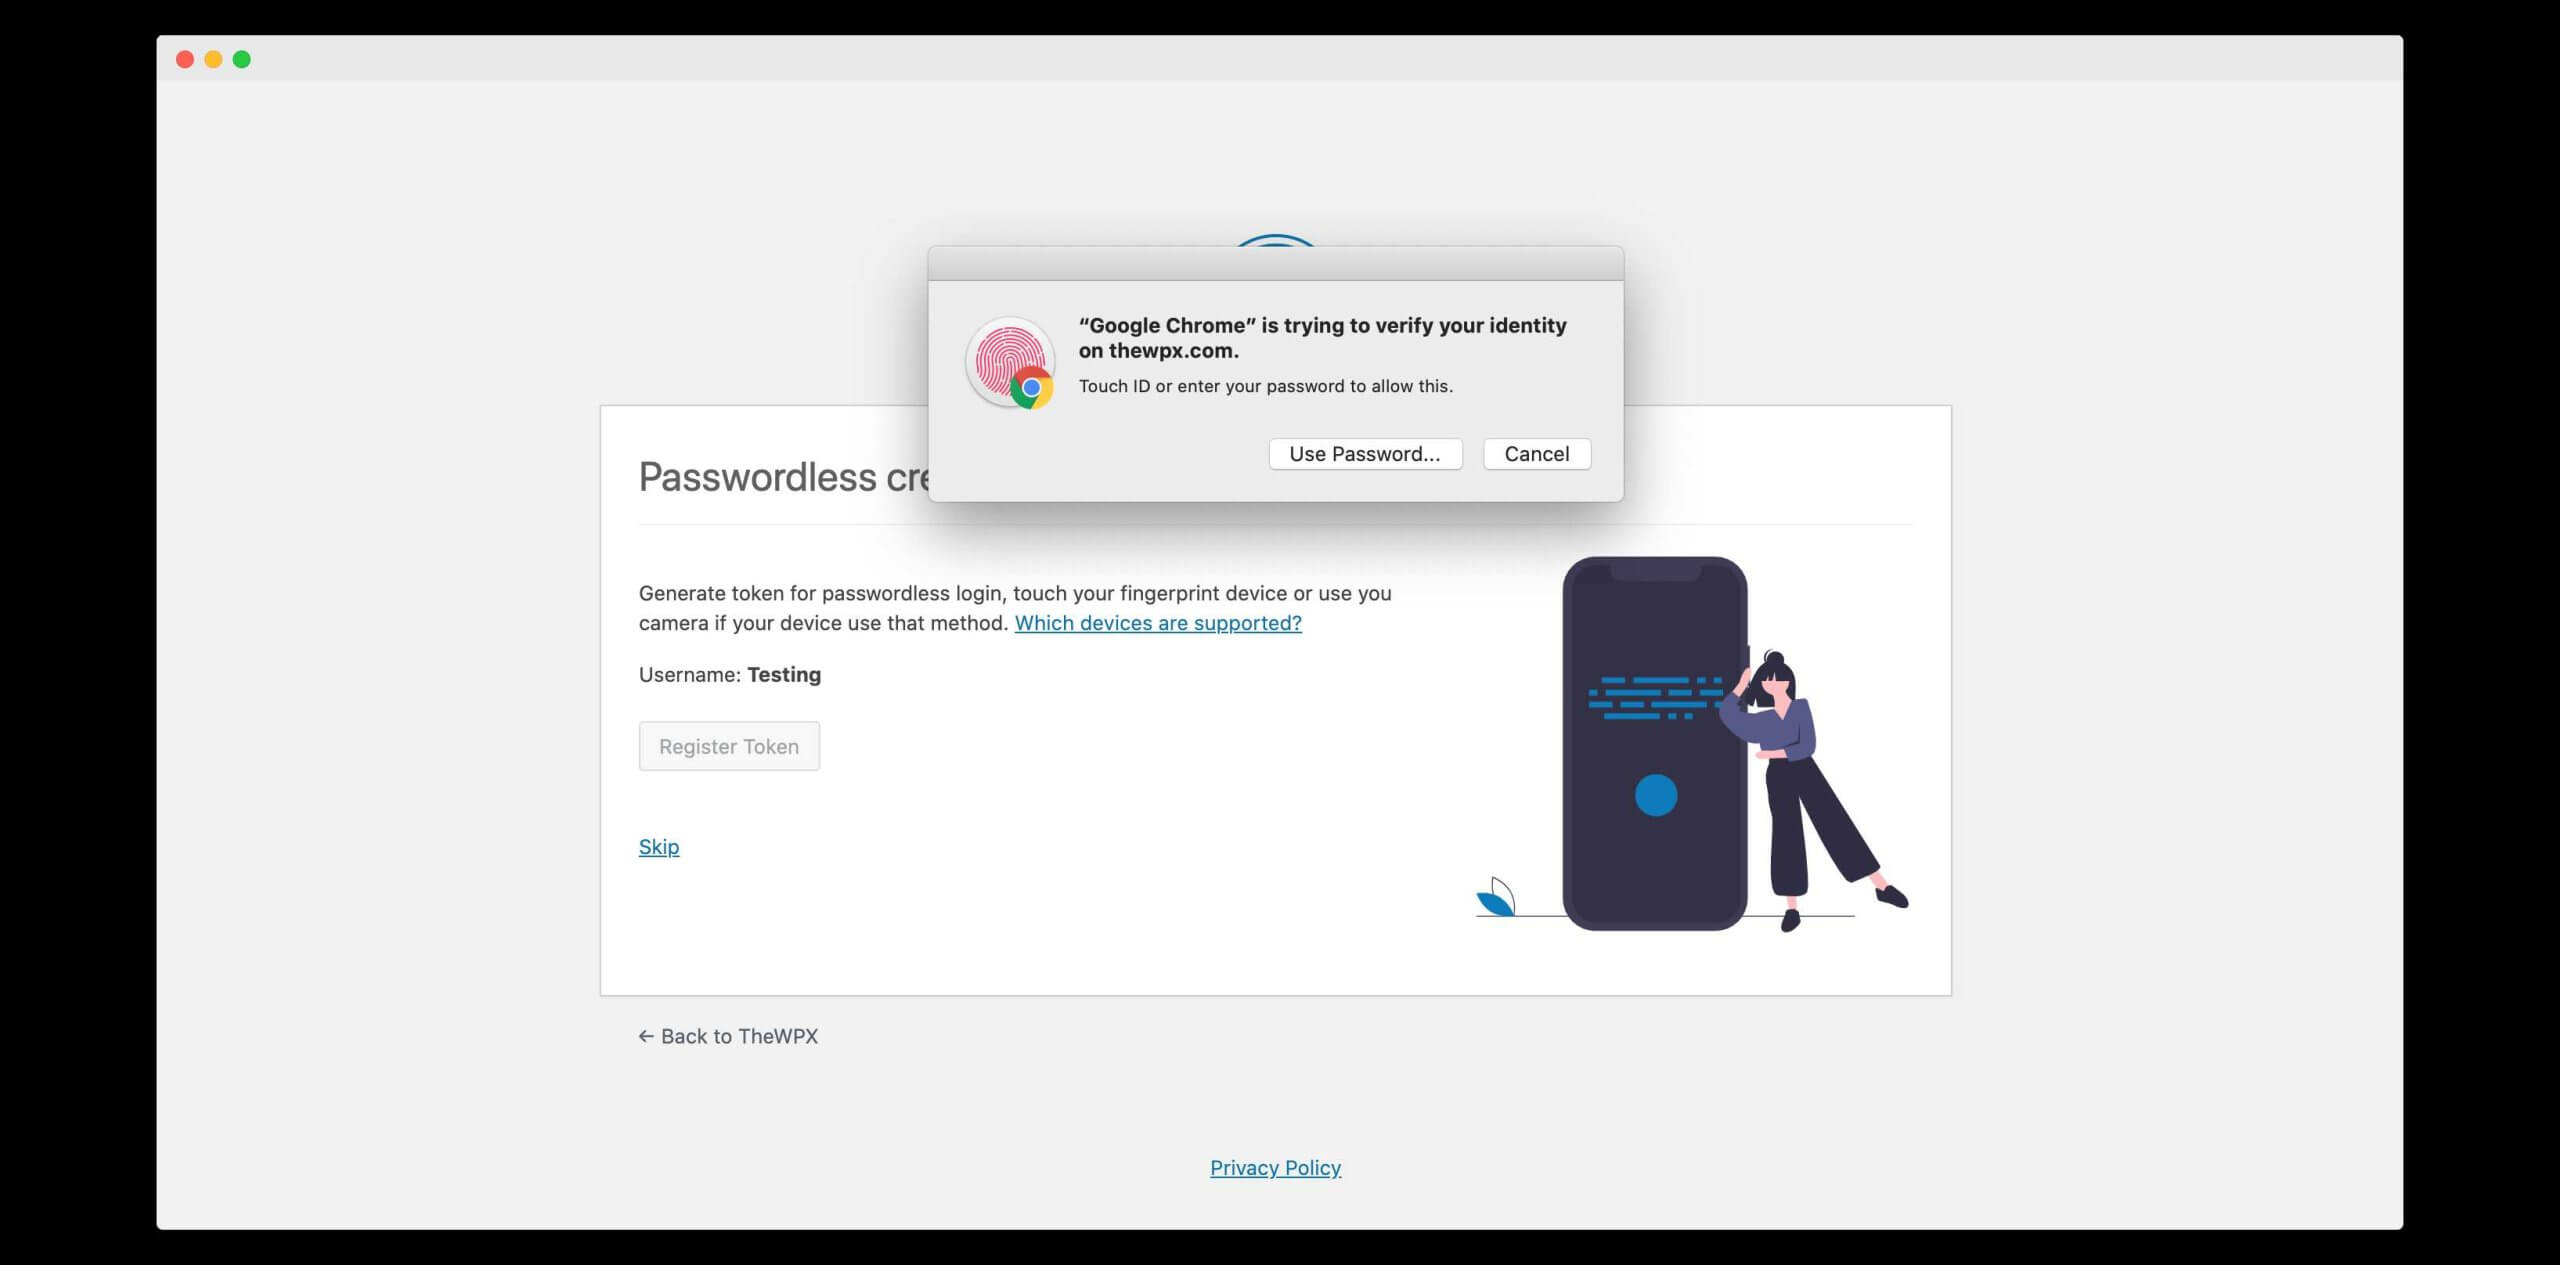 enabling passwordless authentication with touch id on my device